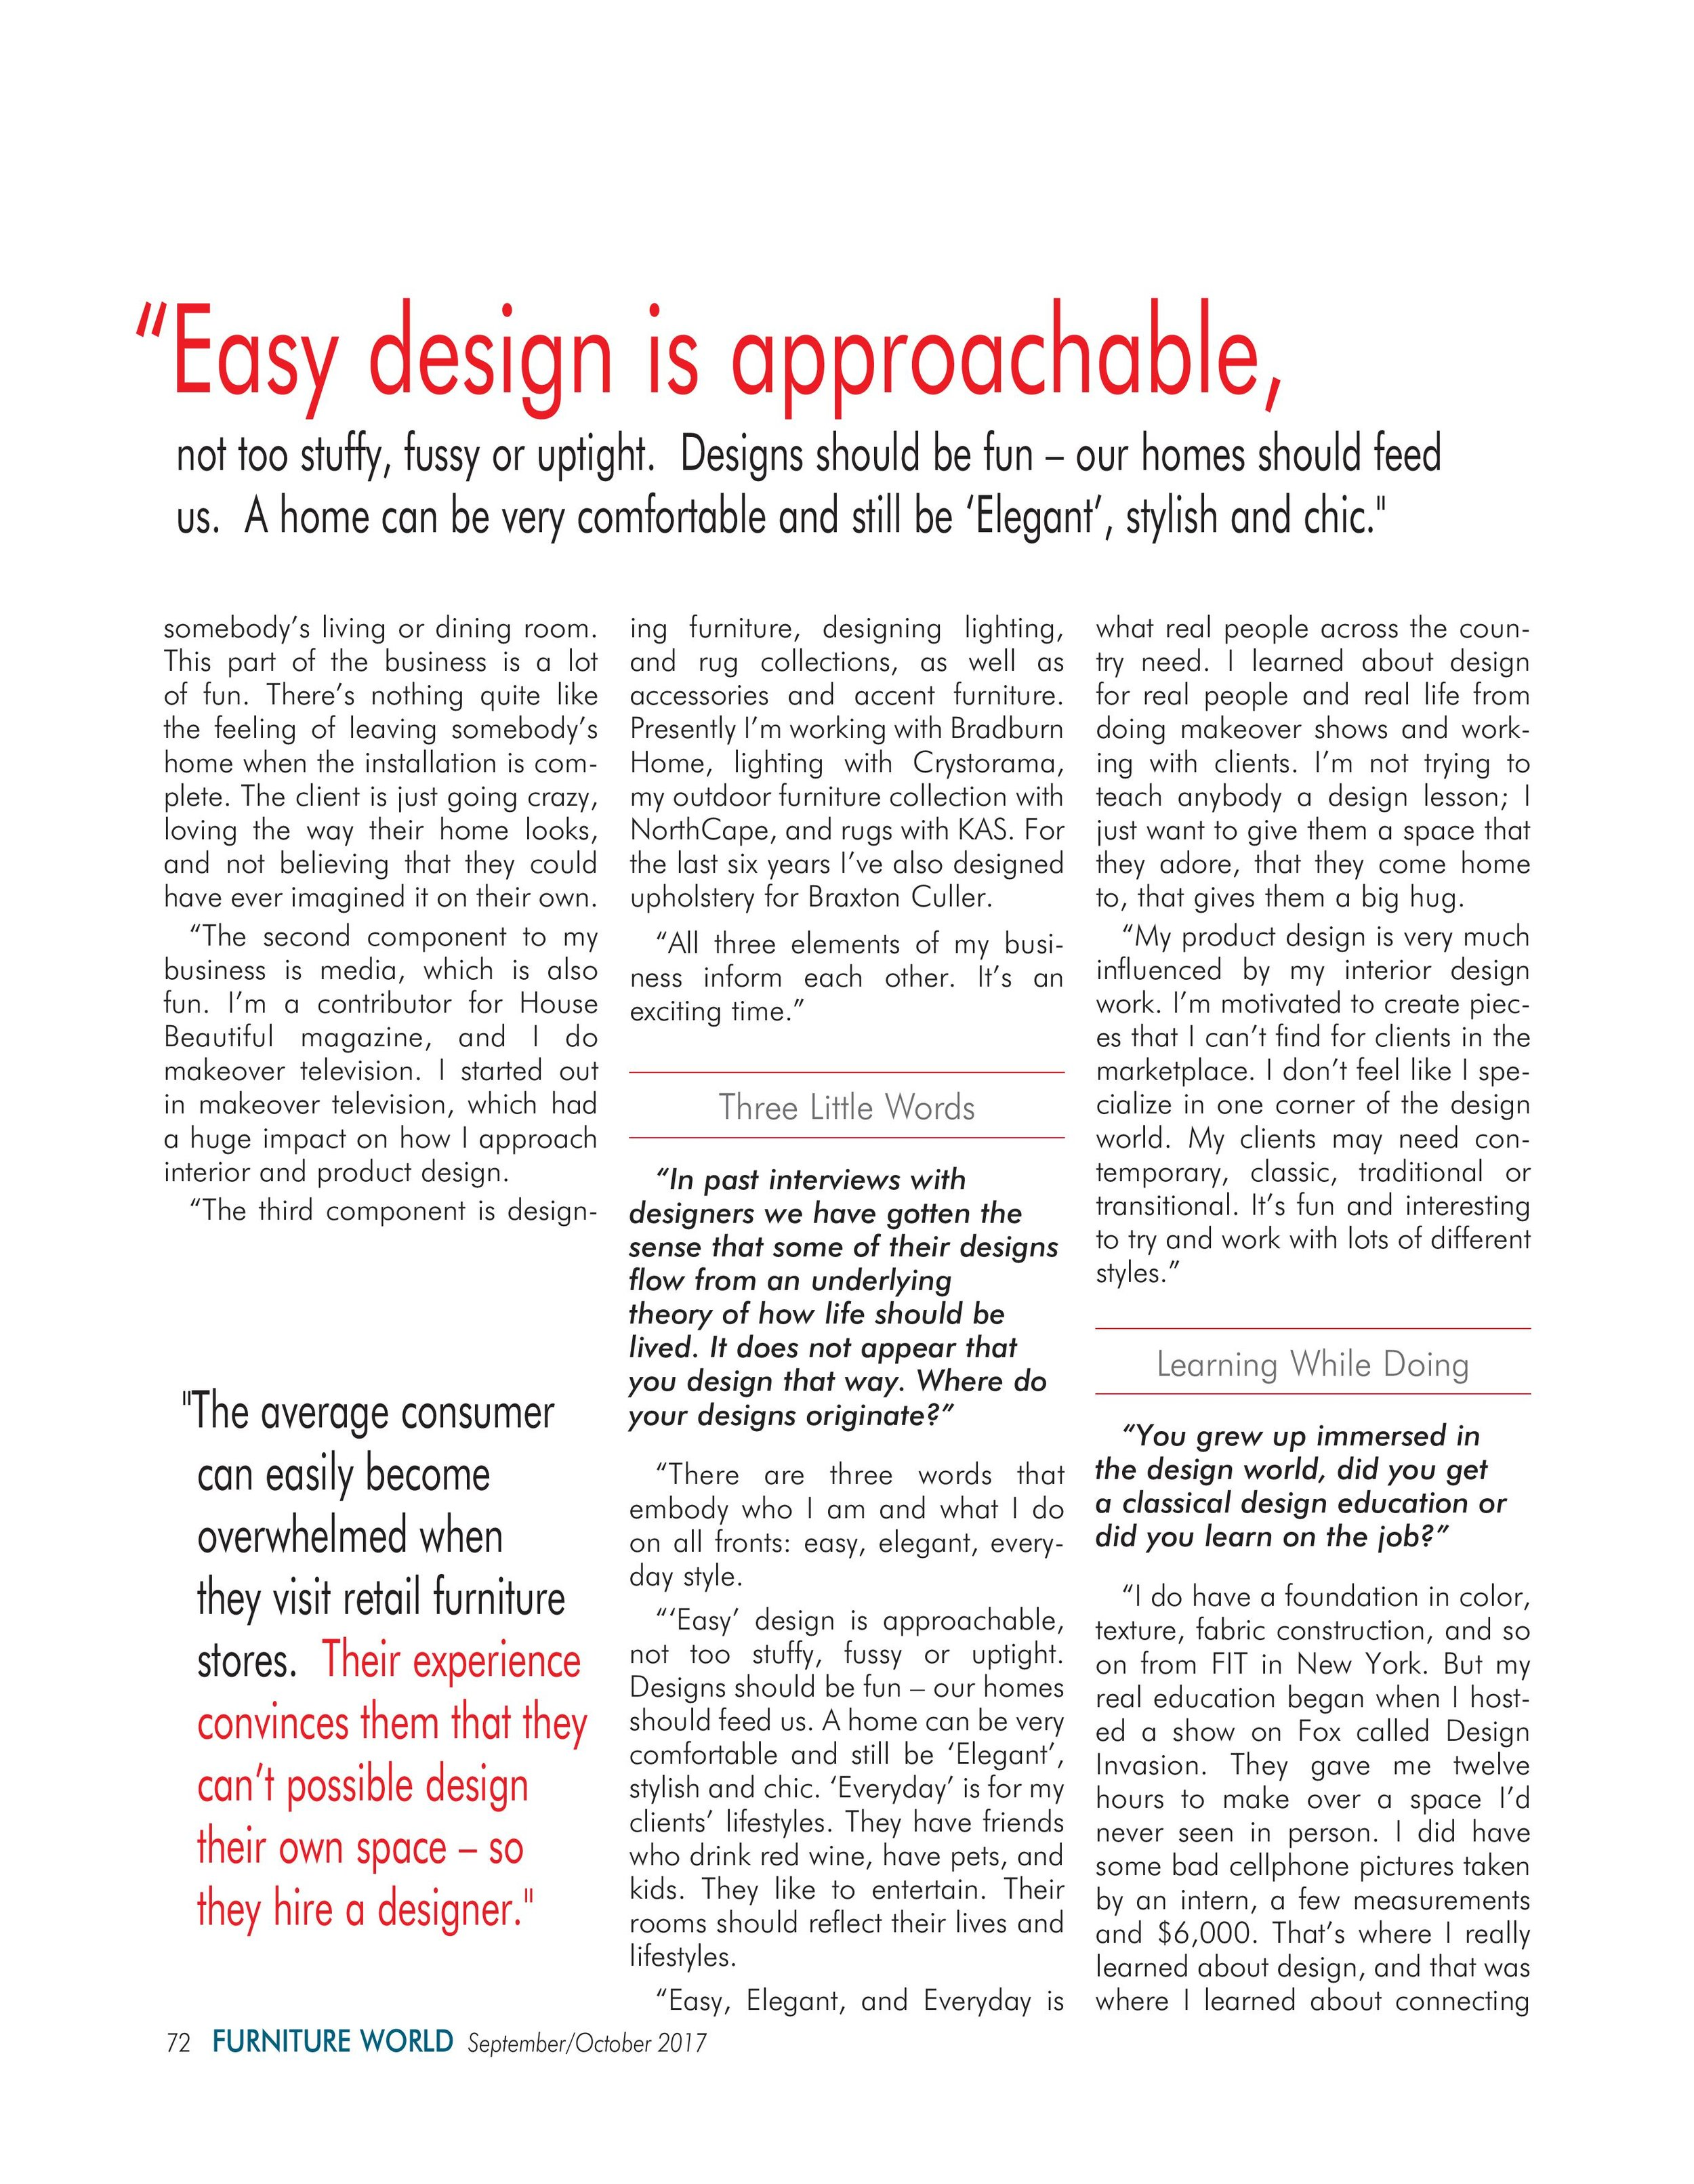 Furniture World Feature October 2017-page-003 (1).jpg